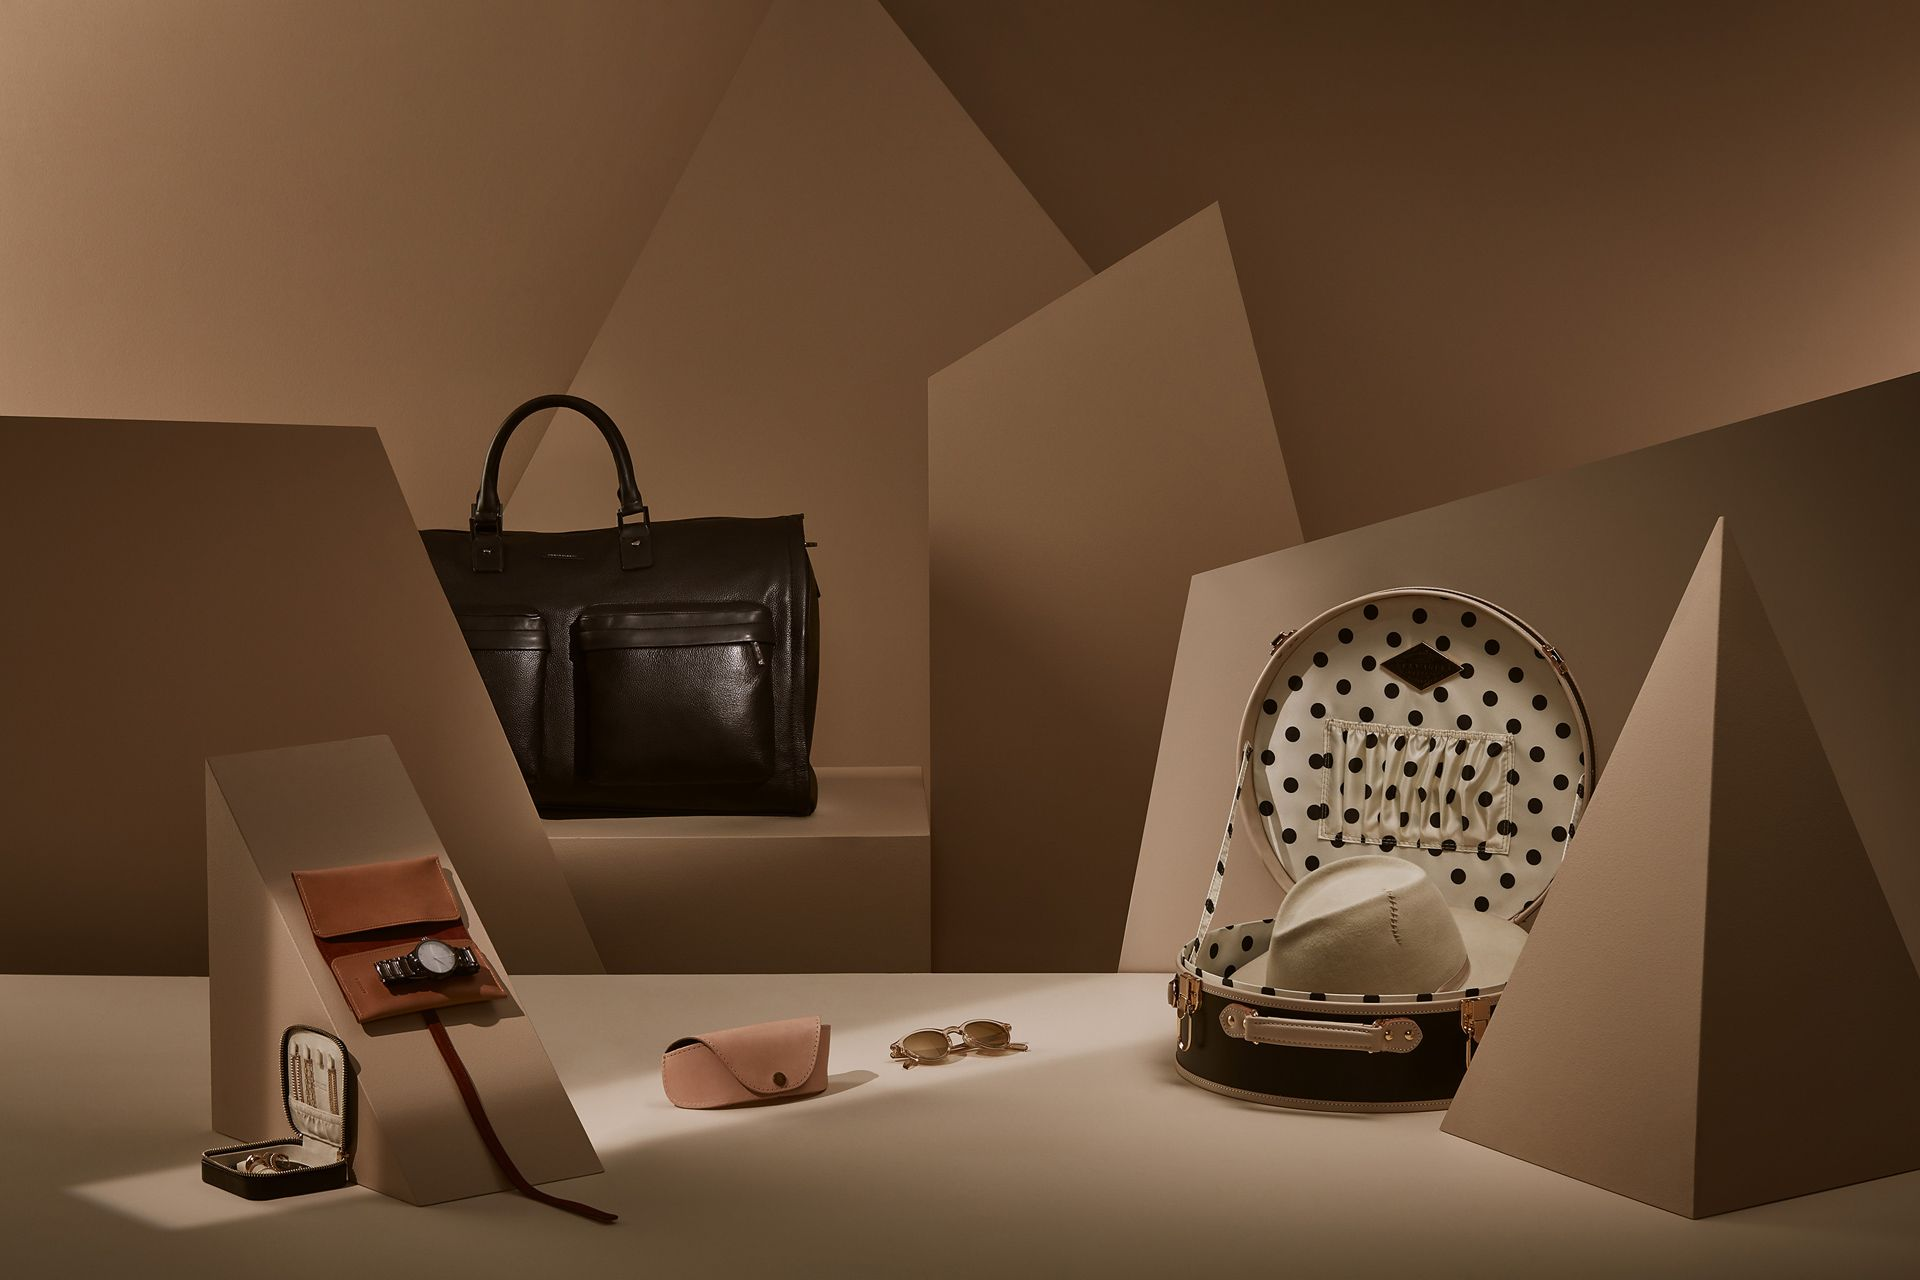 leather bags within different types of shapes by Mathieu Levesque for enRoute